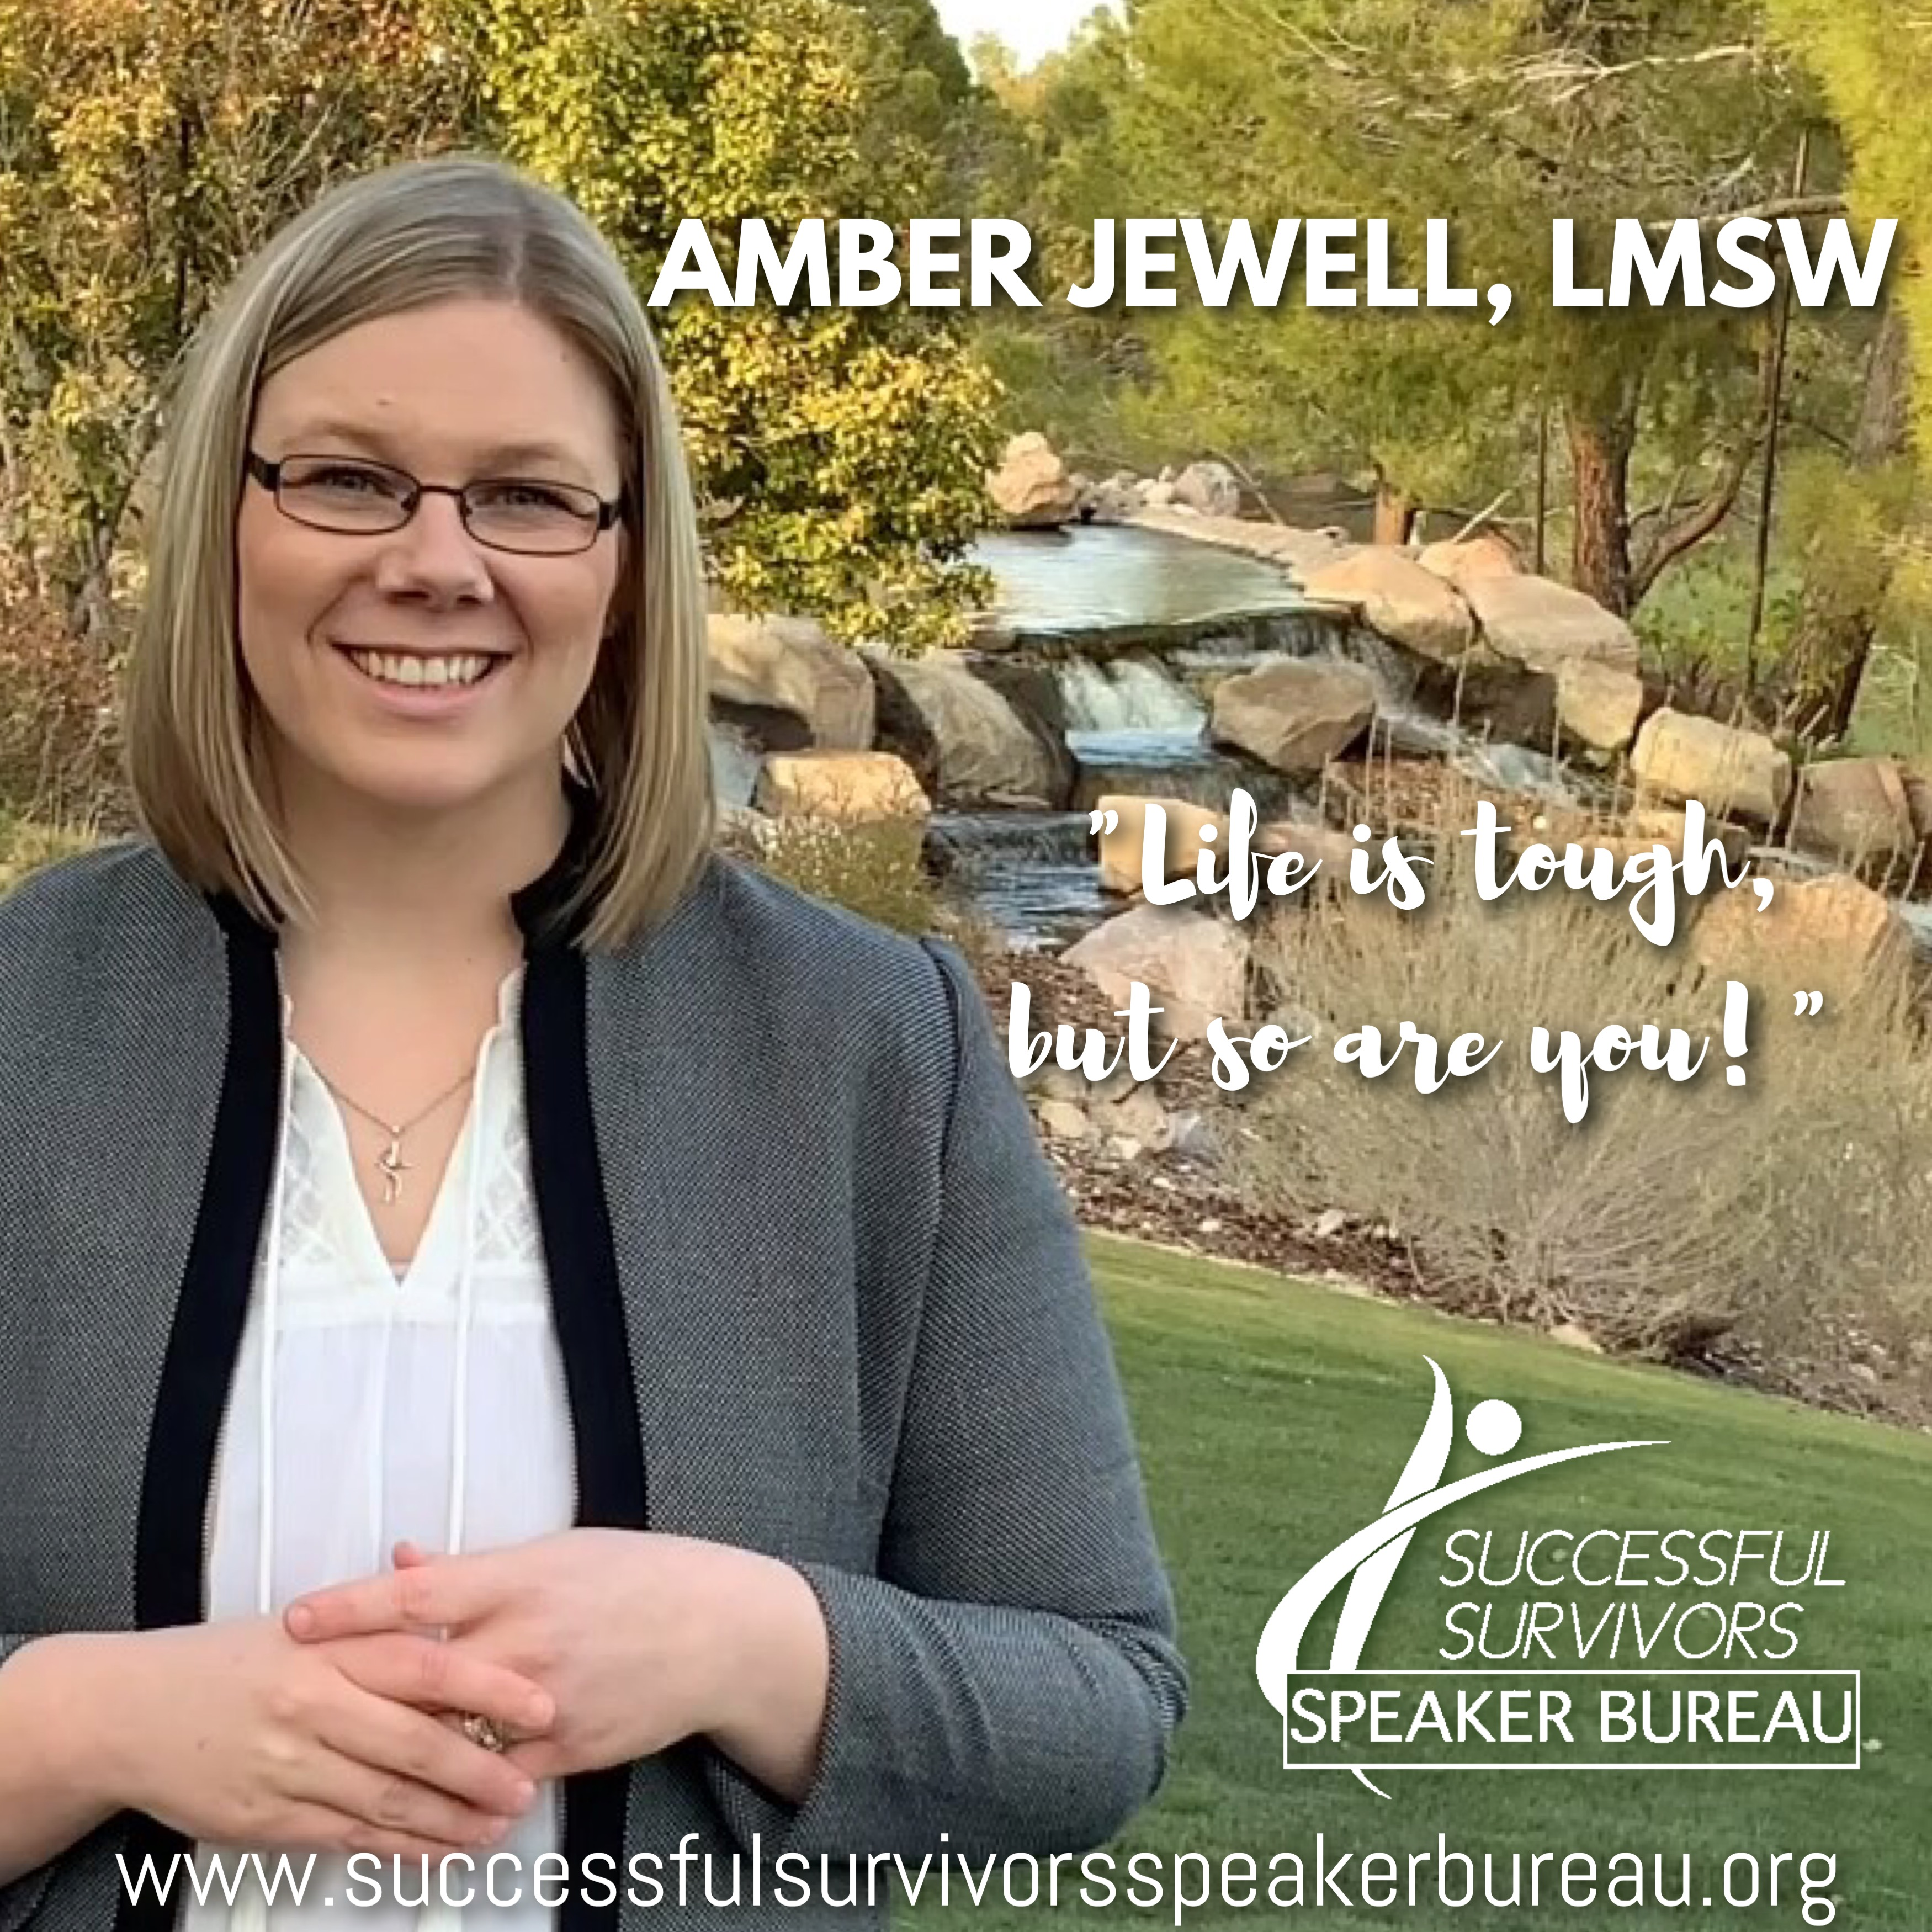 Amber Jewell, LMSW